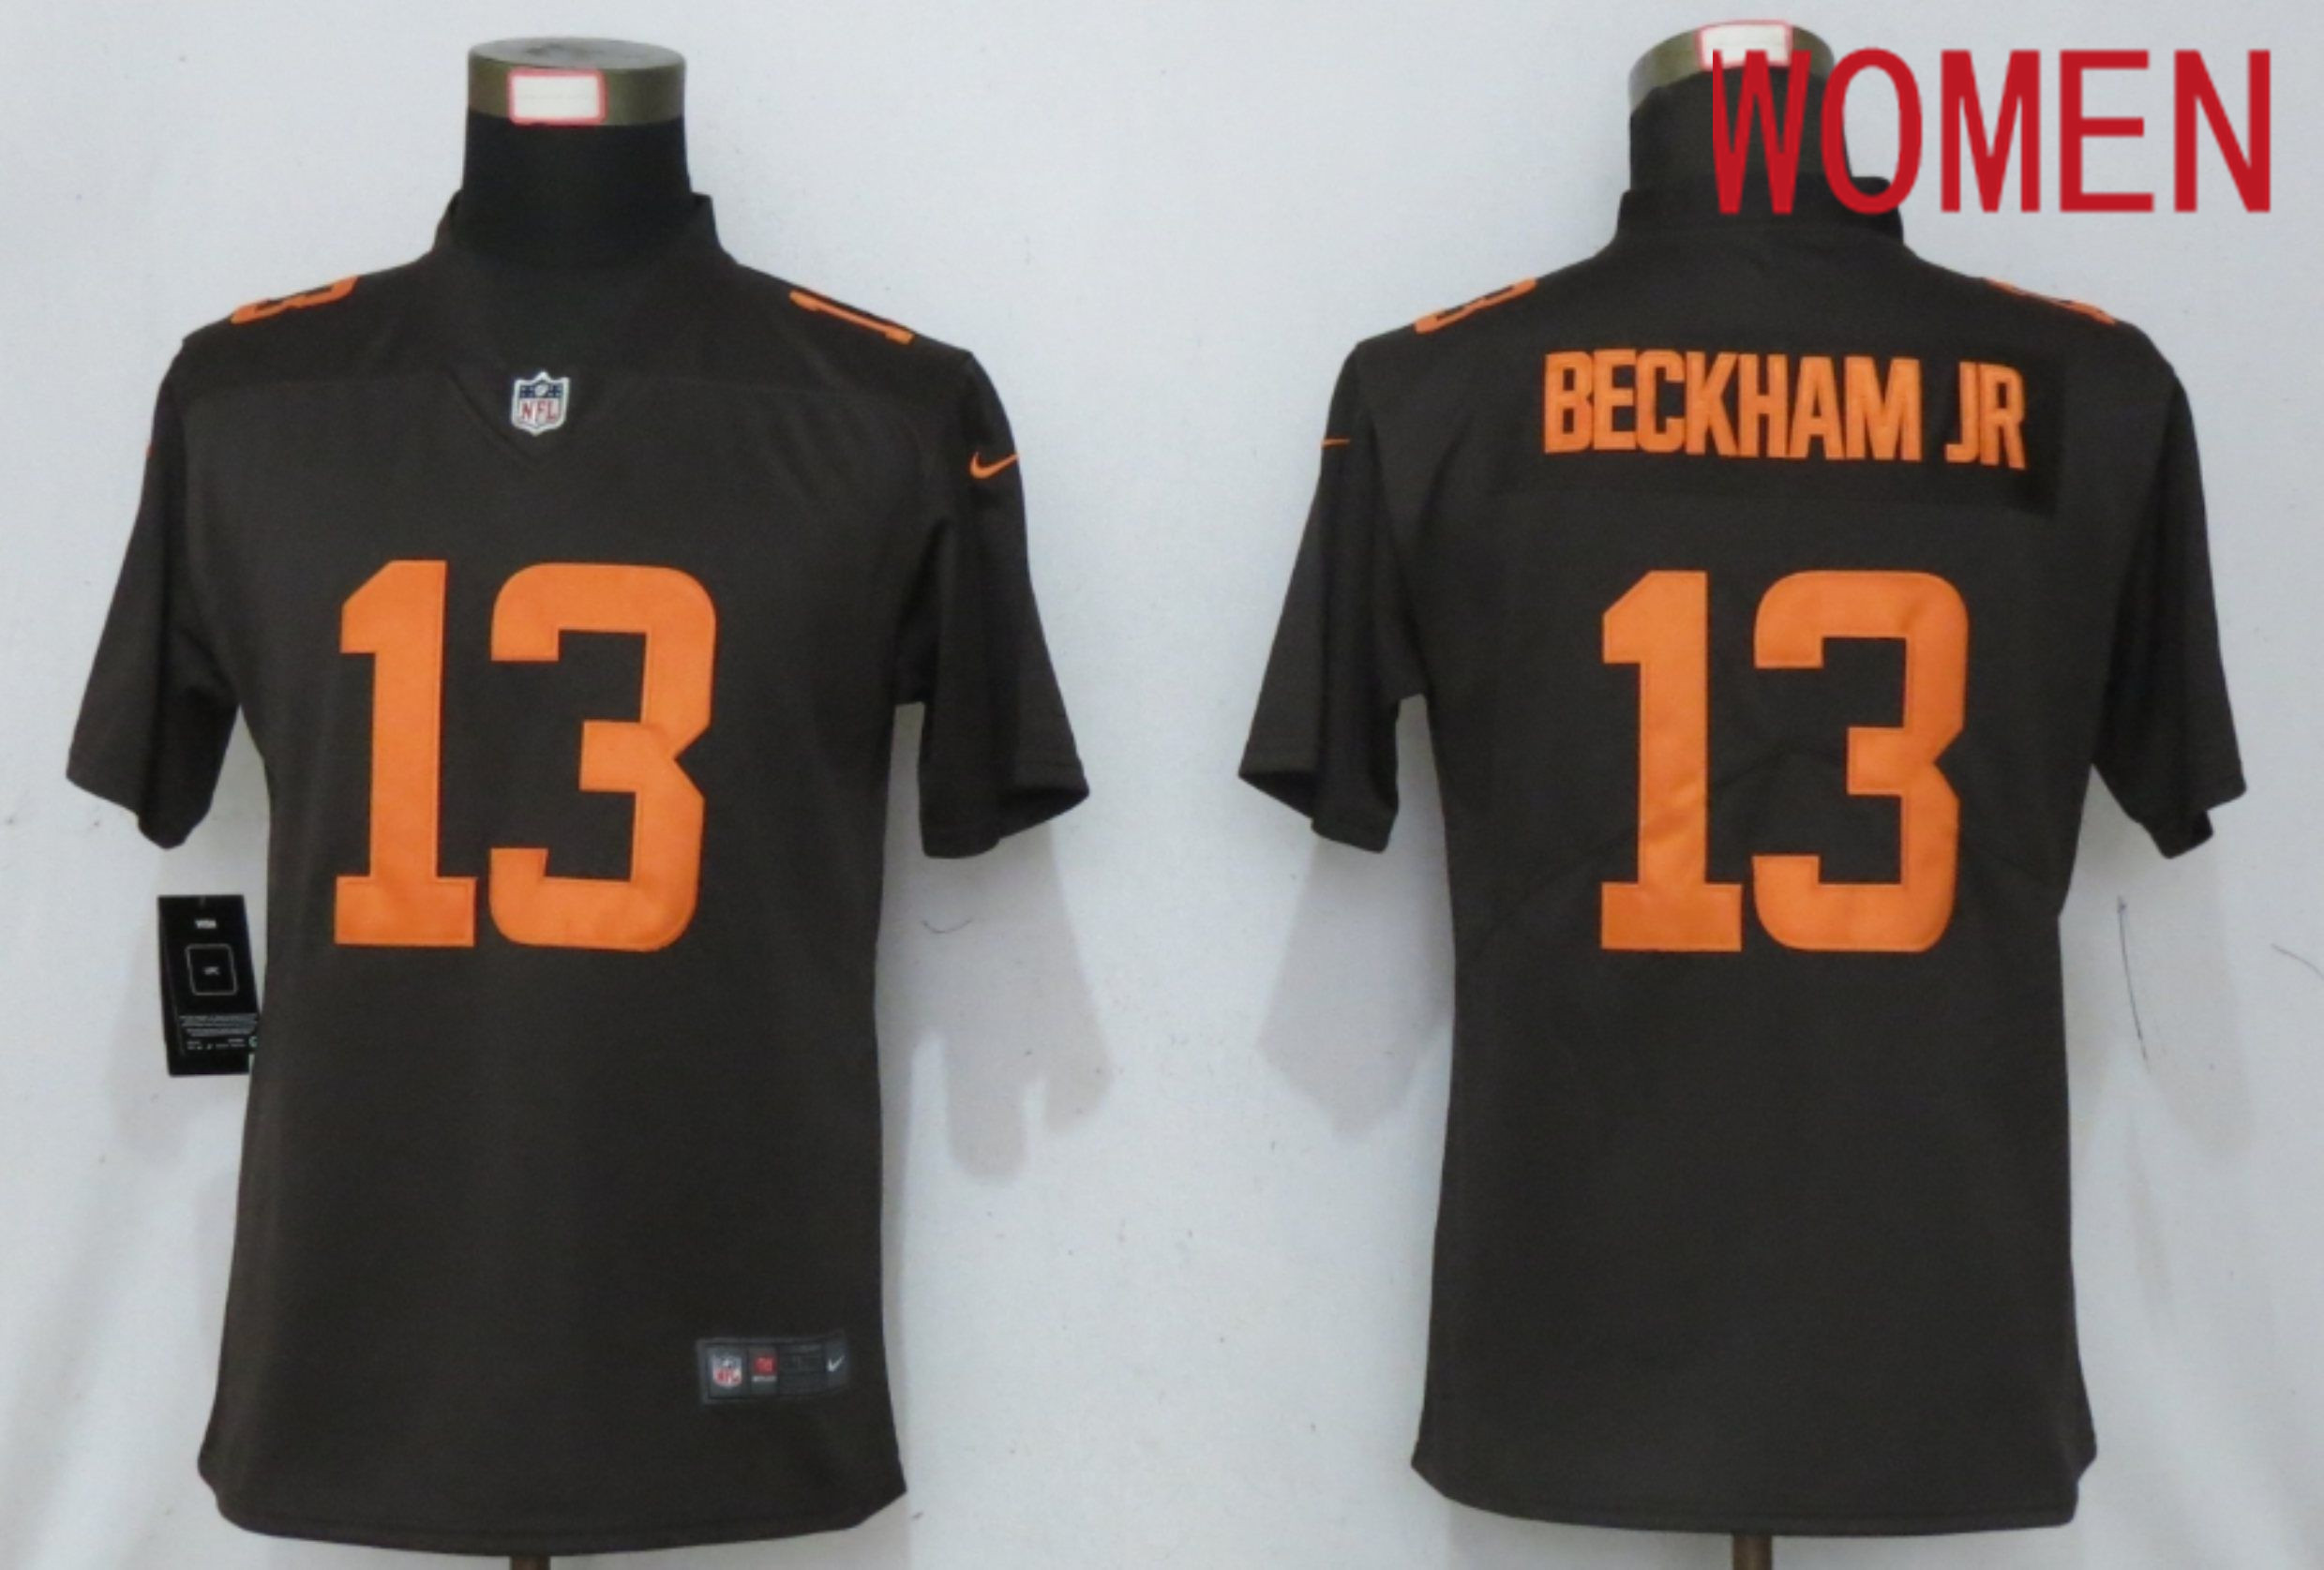 Wholesale Women Cleveland Browns 13 Beckham jr Brown lternate Vapor Elite Playe Nike NFL Jersey